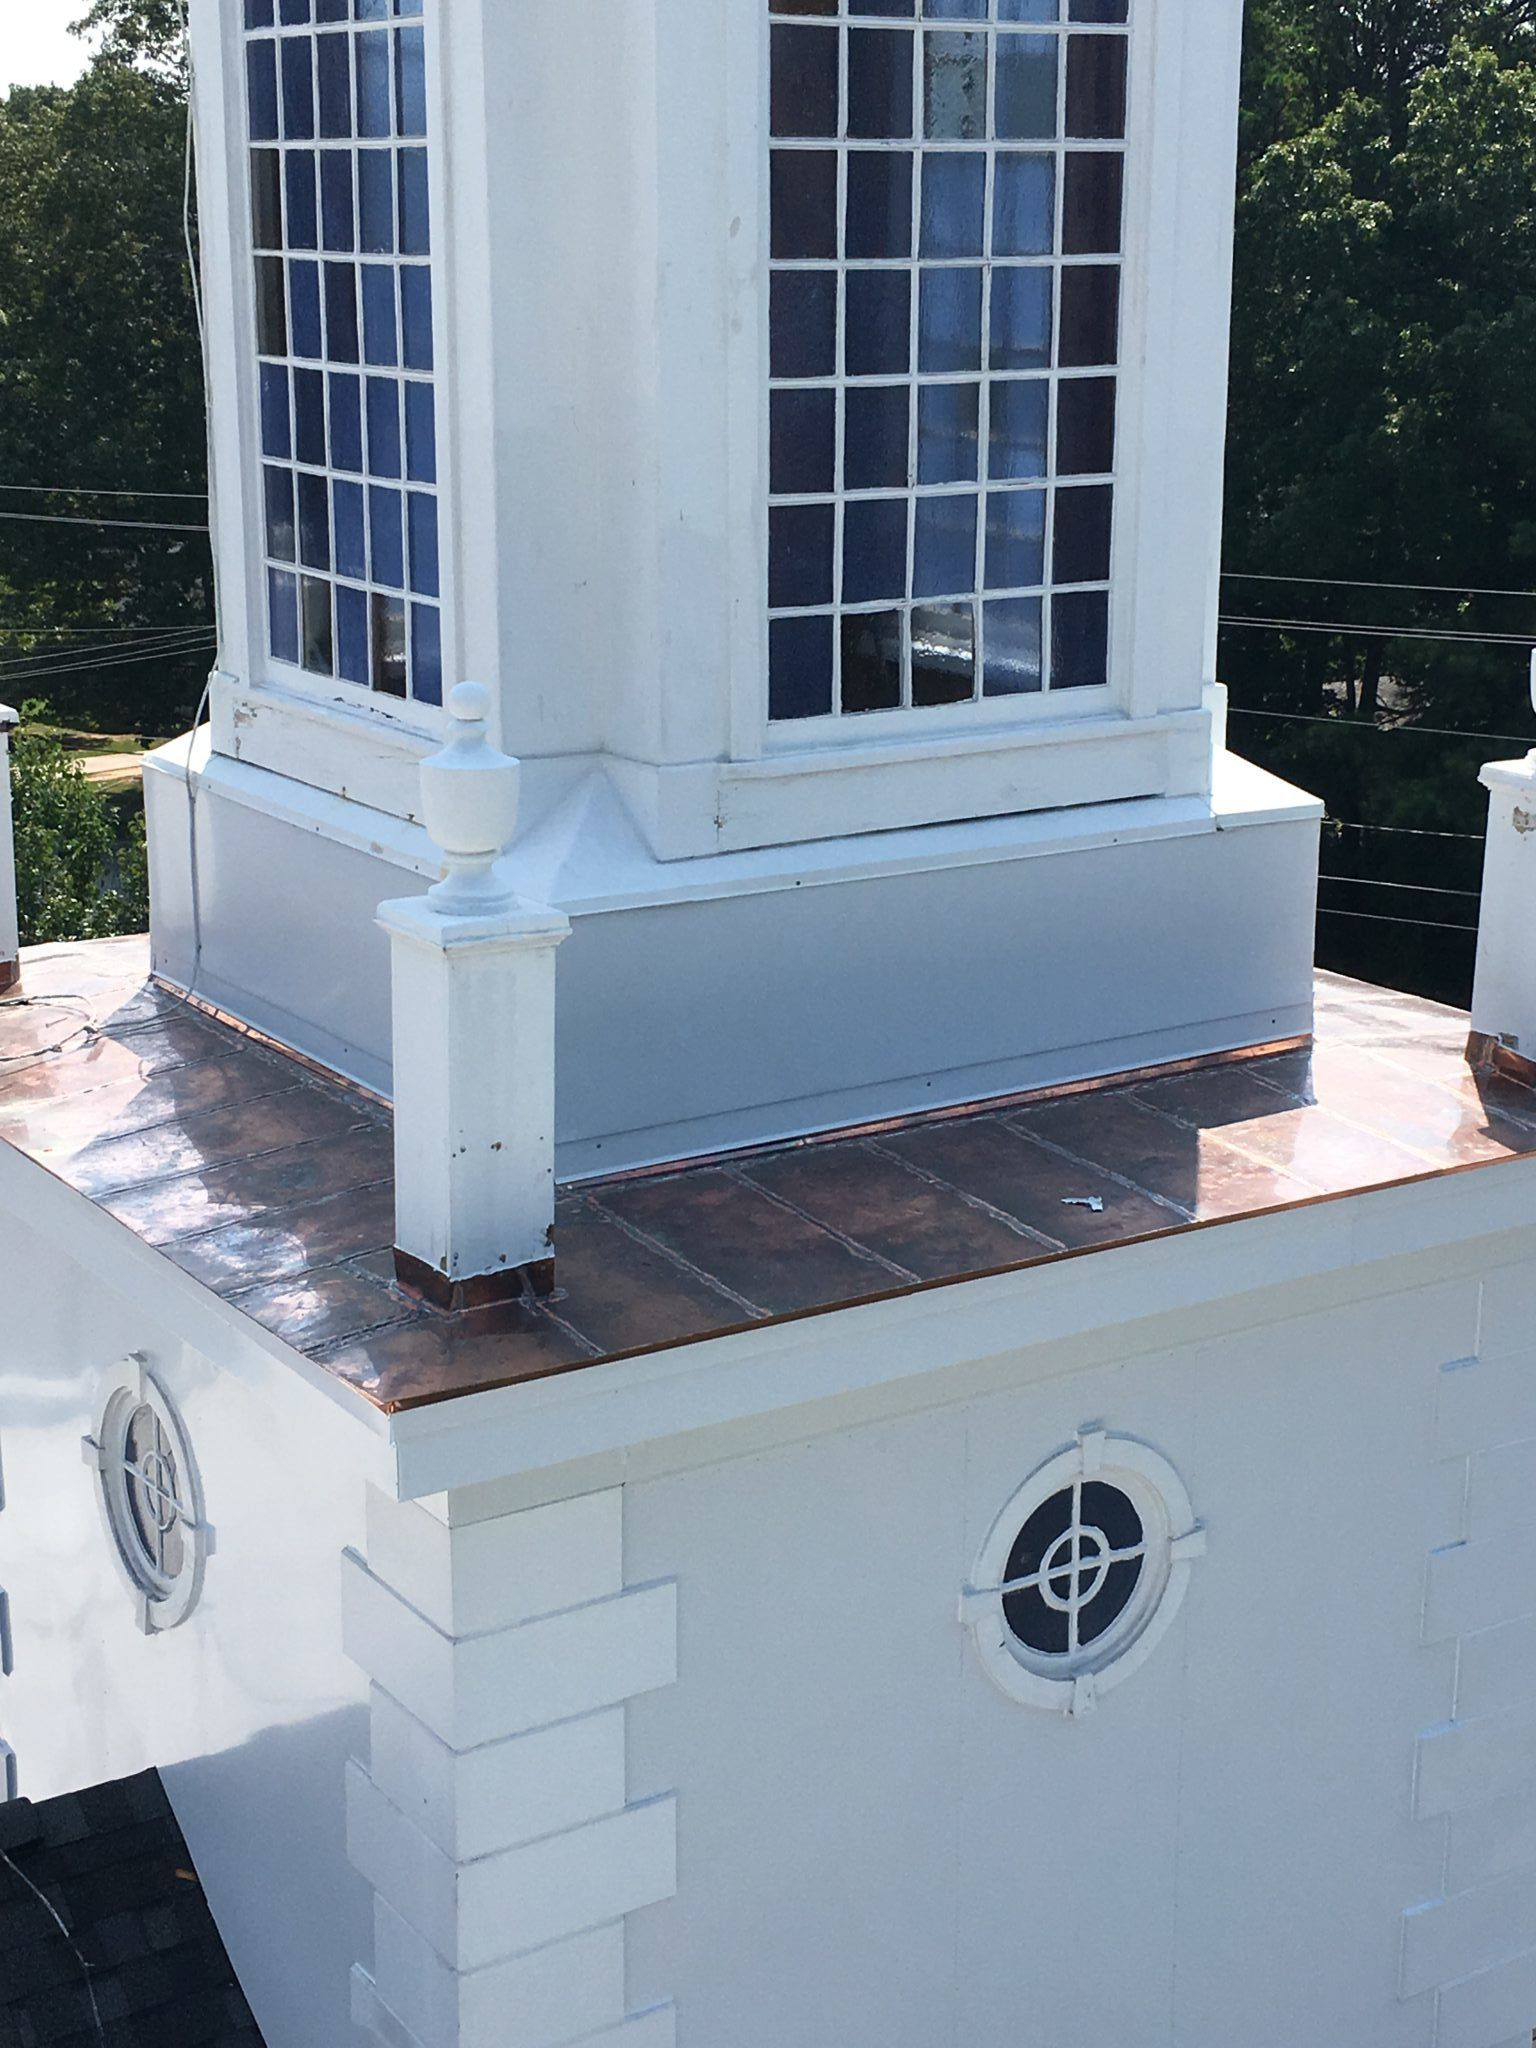 Another church steeple cleaned and repaired!